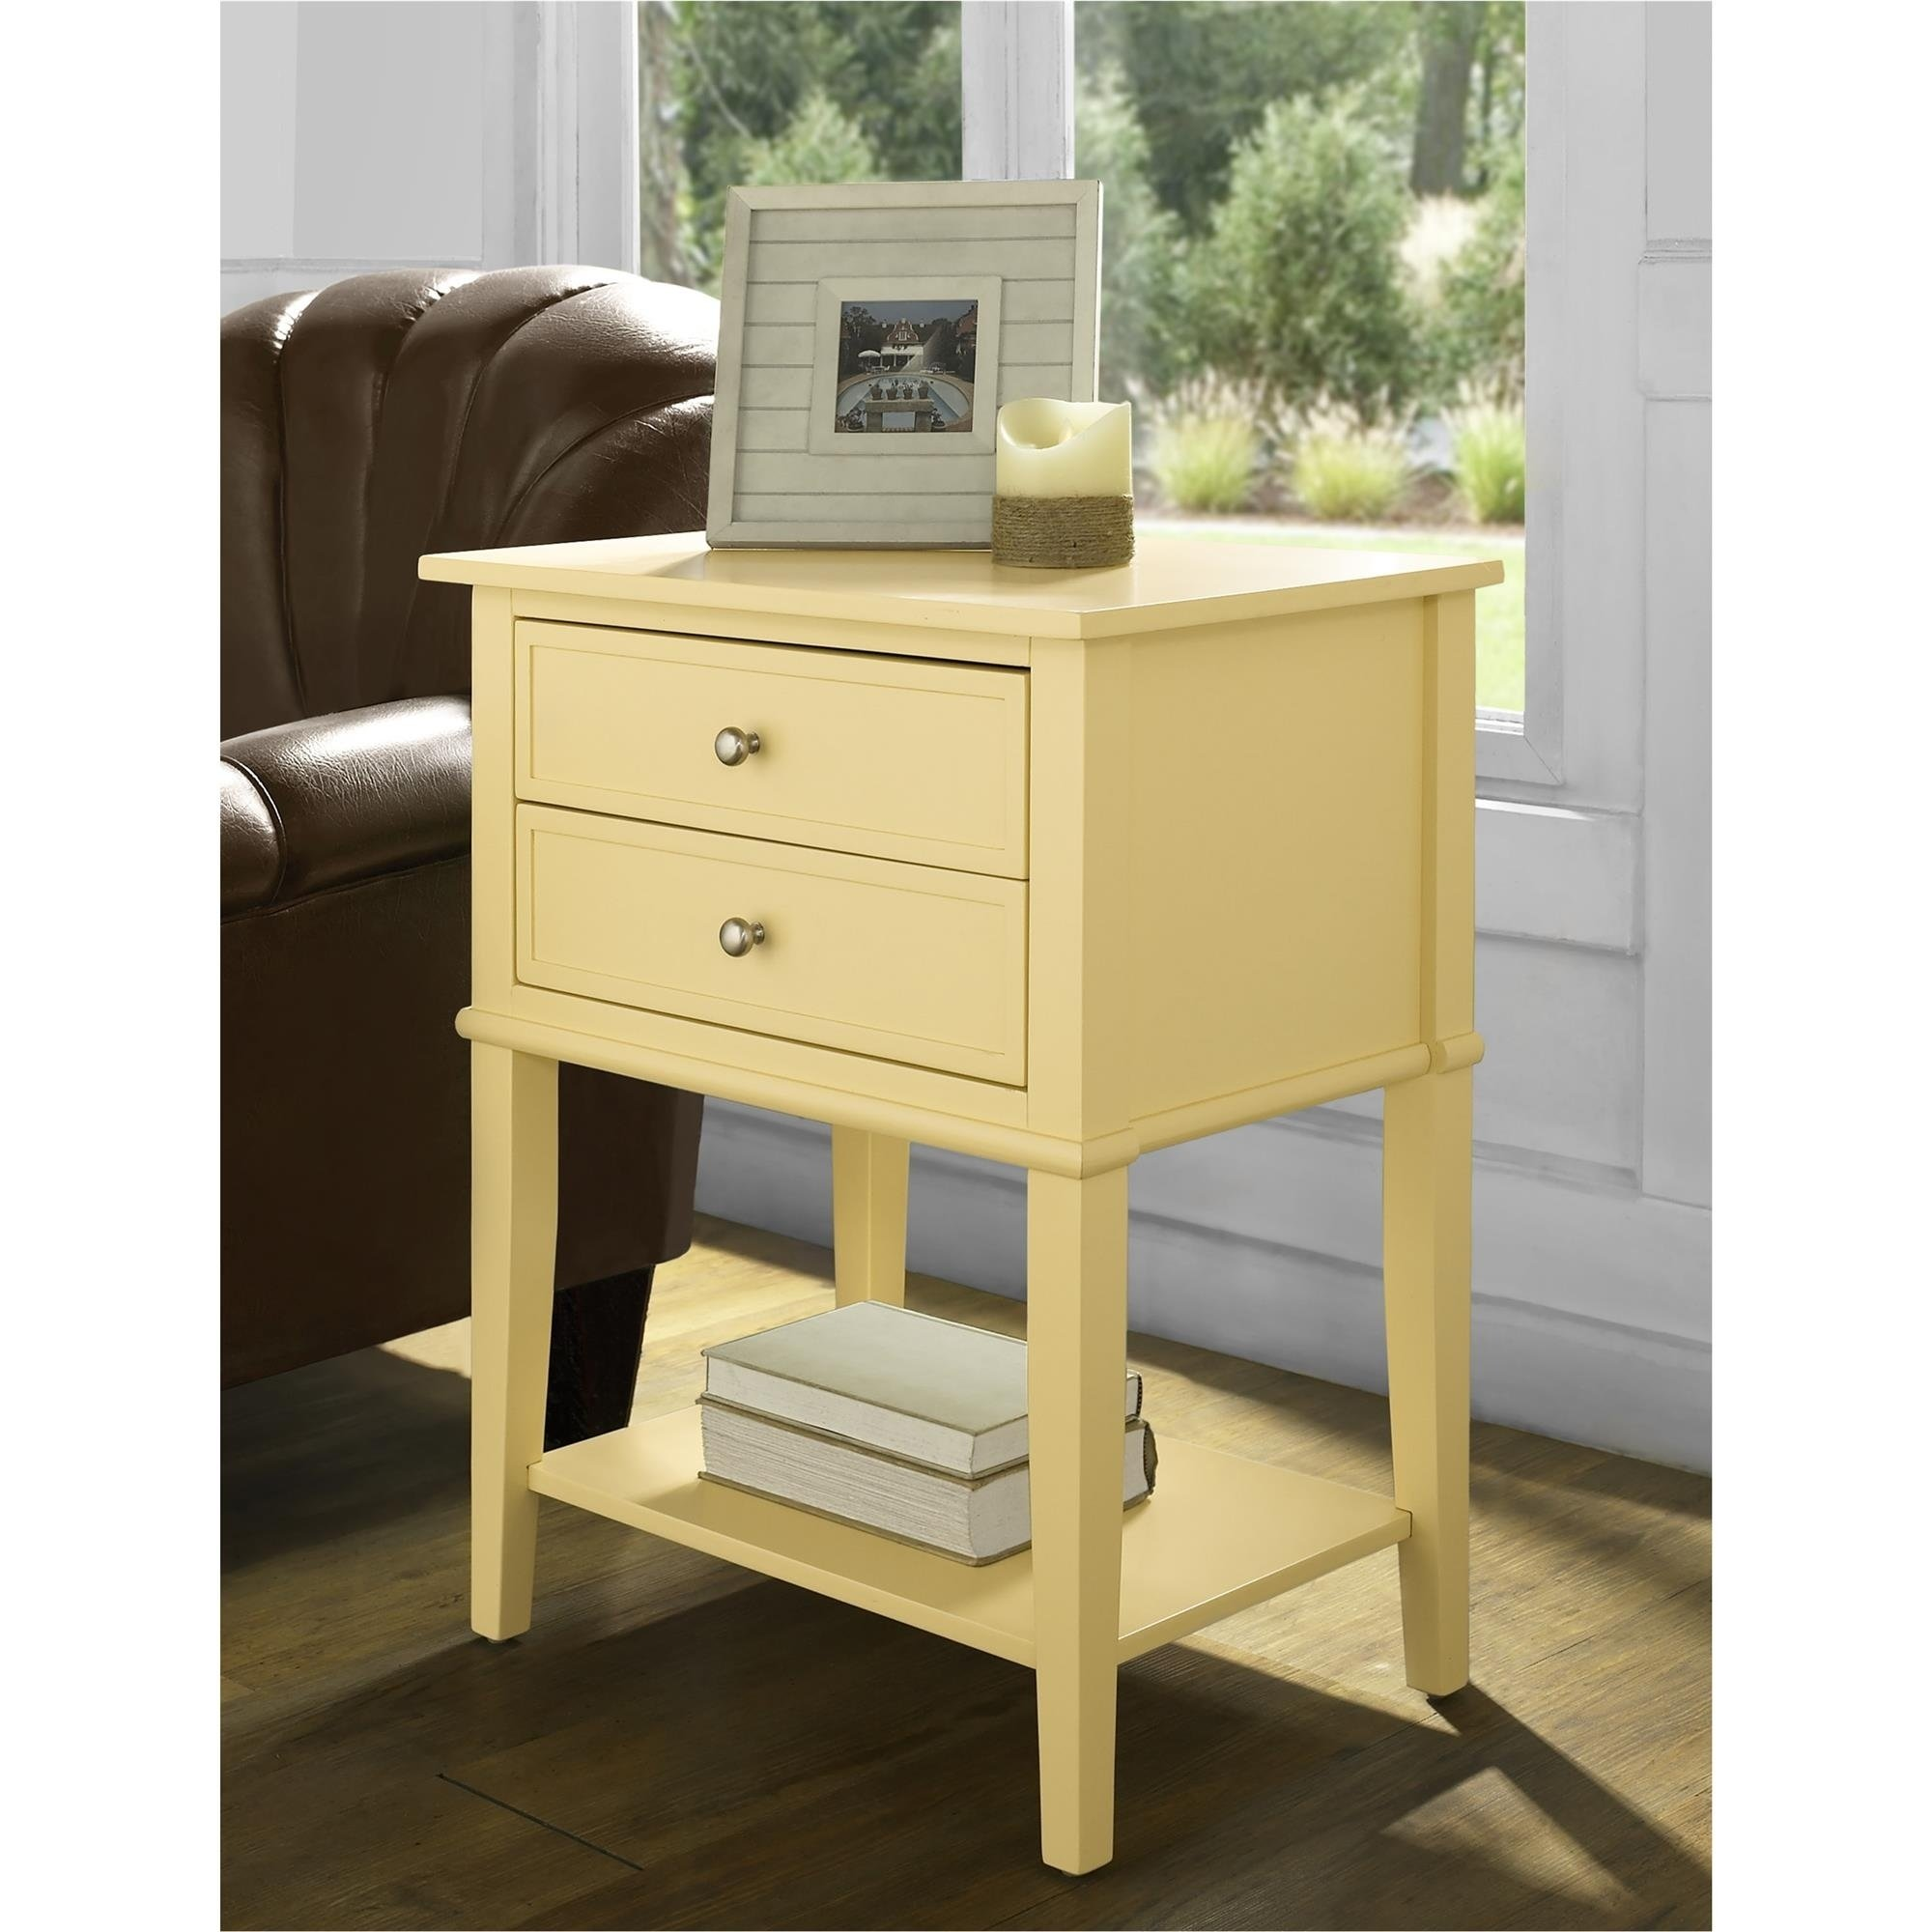 ameriwood home franklin yellow accent table with drawers free shipping today best dining room furniture armoire desk extendable marble hat stand solid wood end drawer inch round